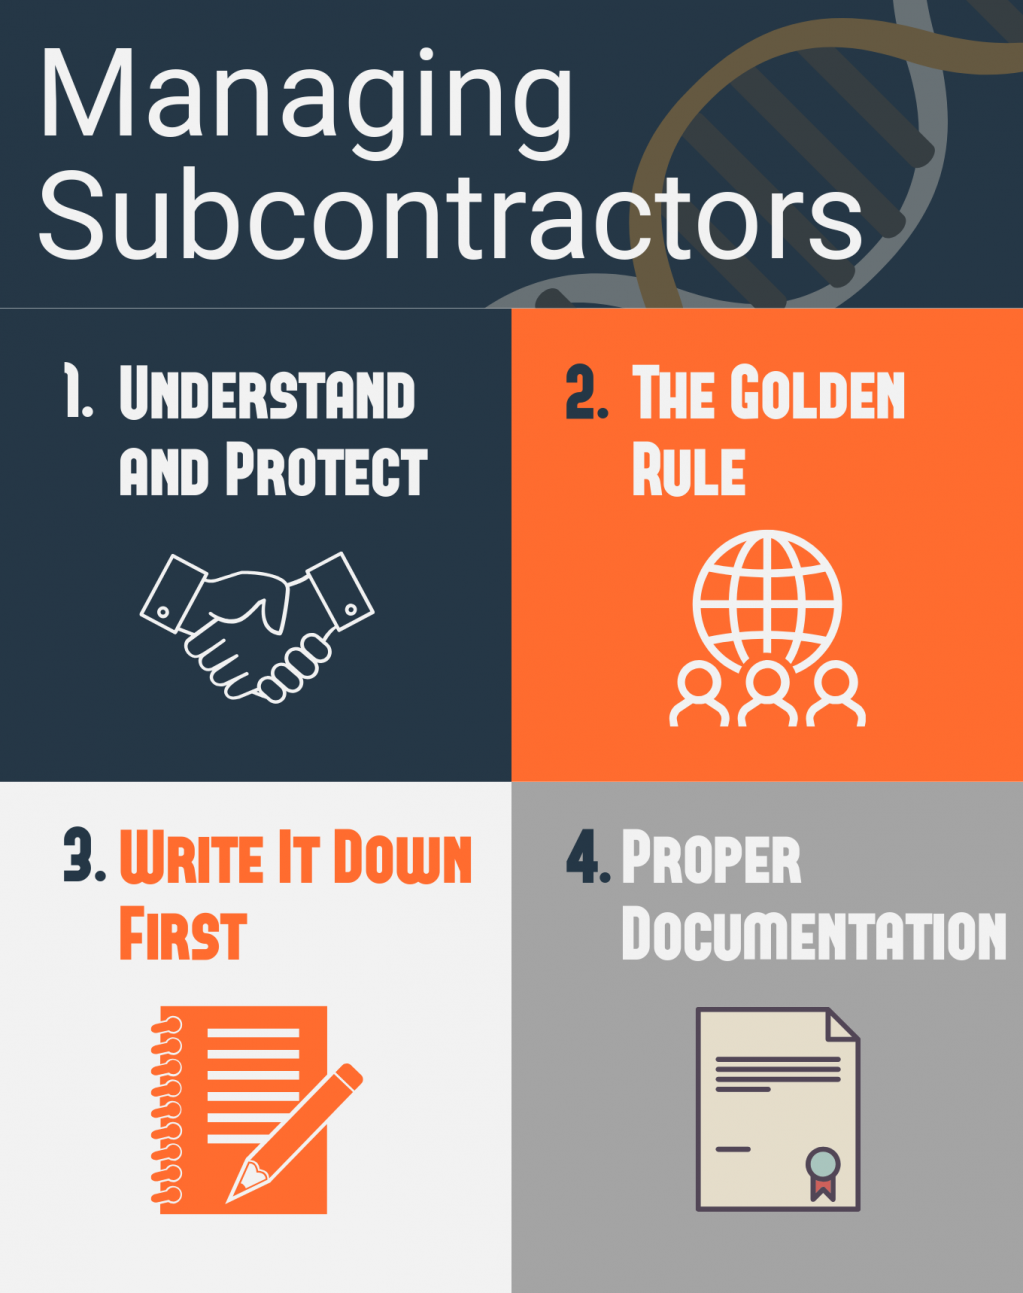 managing subcontractors infographic